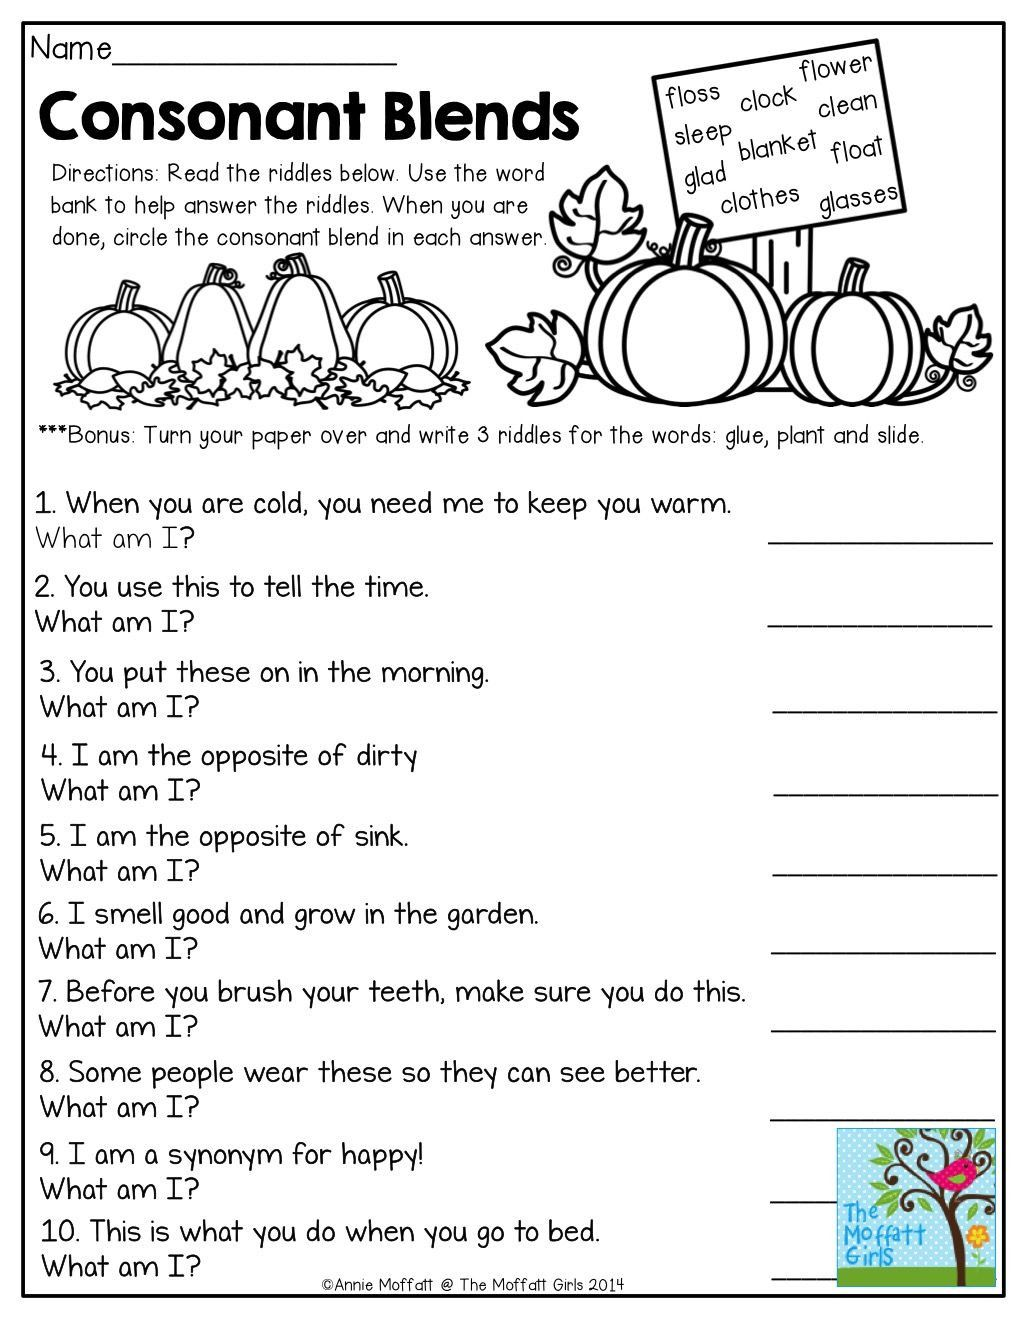 Consonant Blends Worksheets 3rd Grade Consonant Blends Mystery Words Read  the Clues and…   Phonics blends worksheets [ 1325 x 1024 Pixel ]